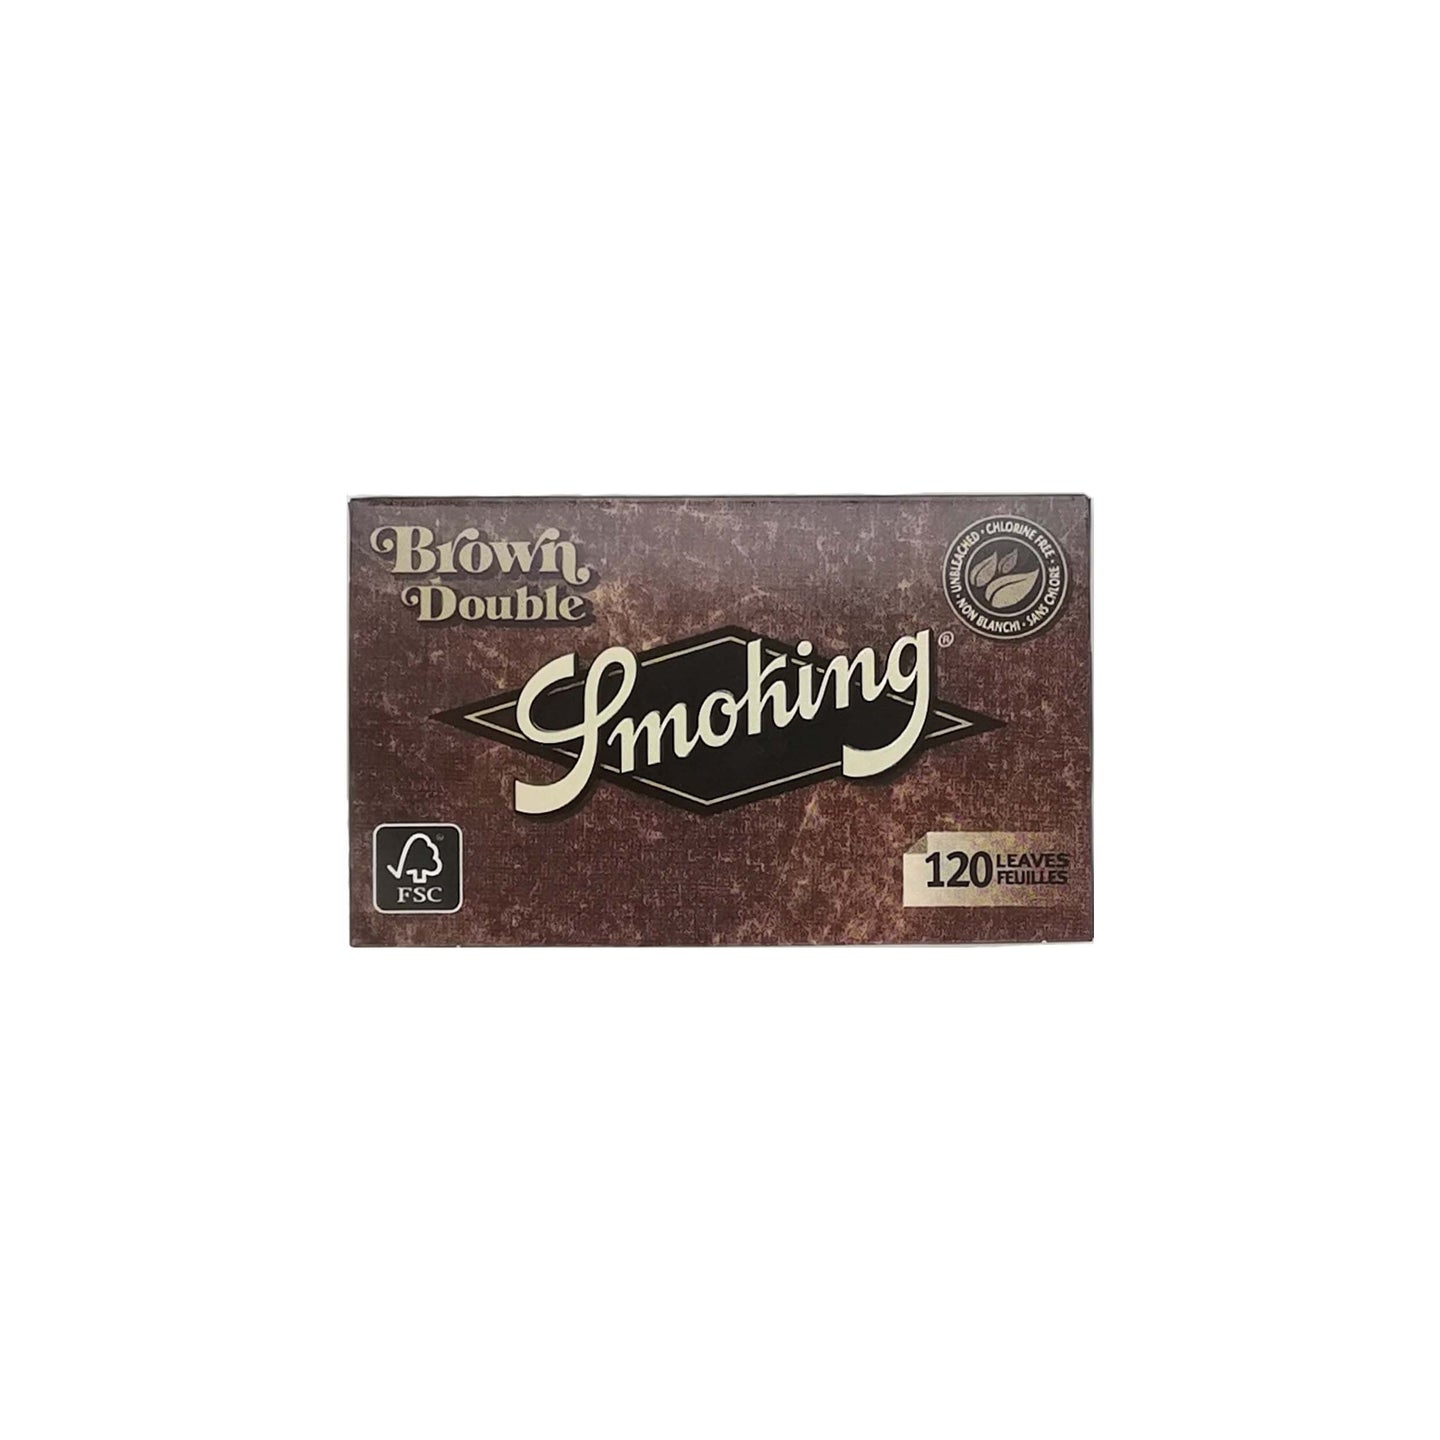 Smoking Brown Double